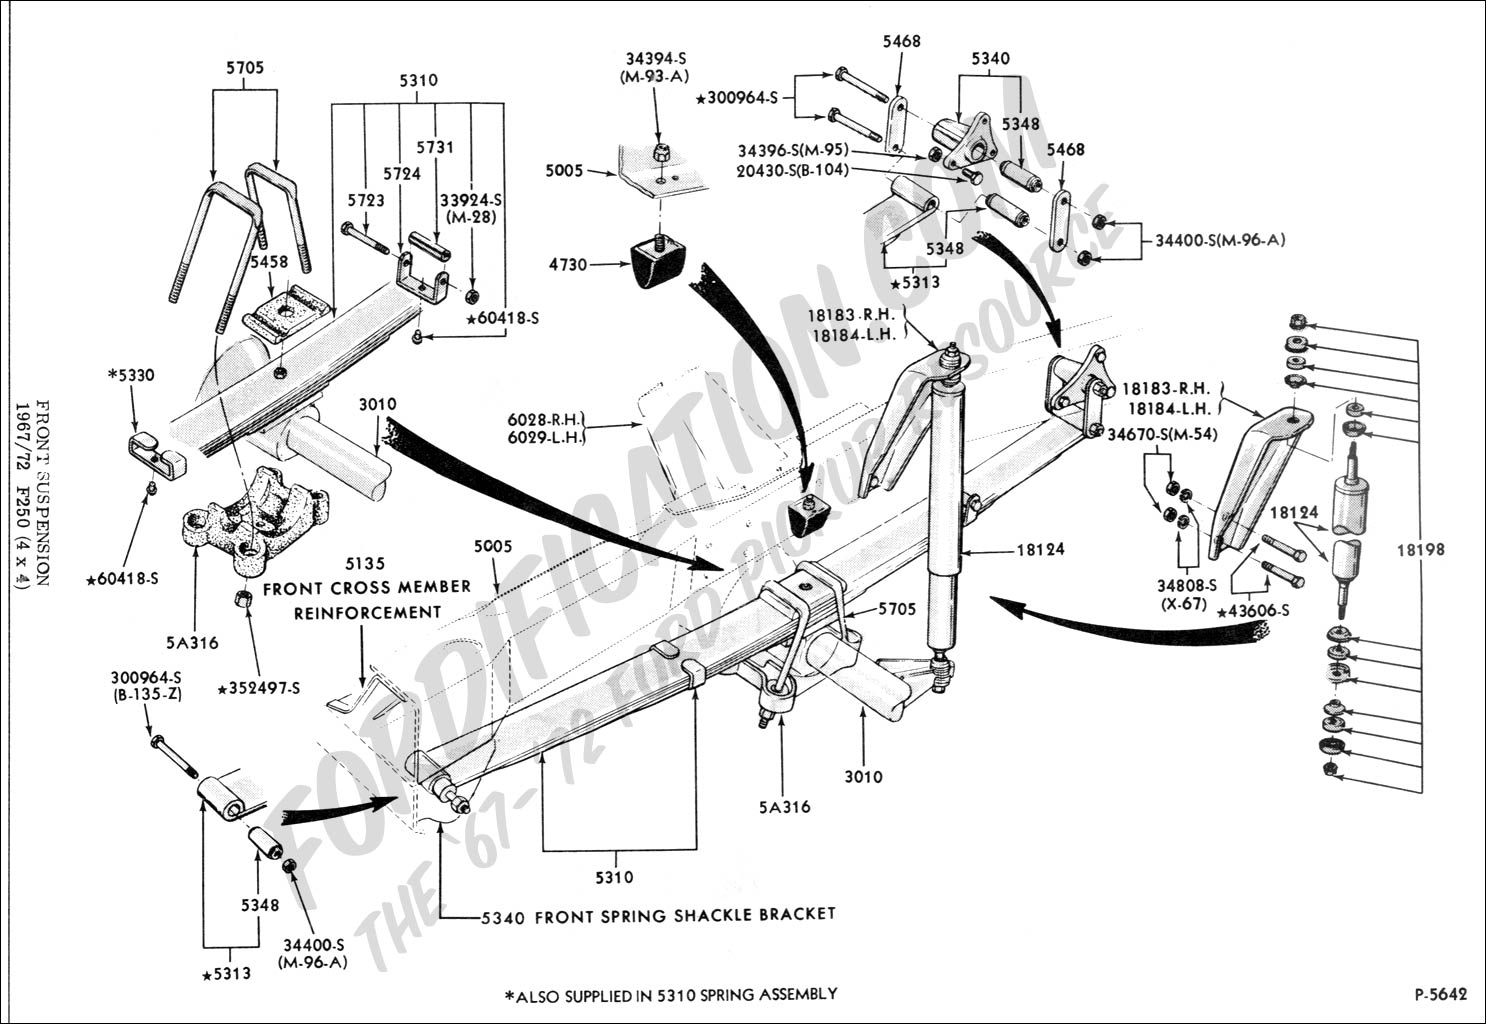 2000 Chevy Trailblazer Wiring Schematic Guide And Troubleshooting 2002 Headlight Diagram Images Gallery